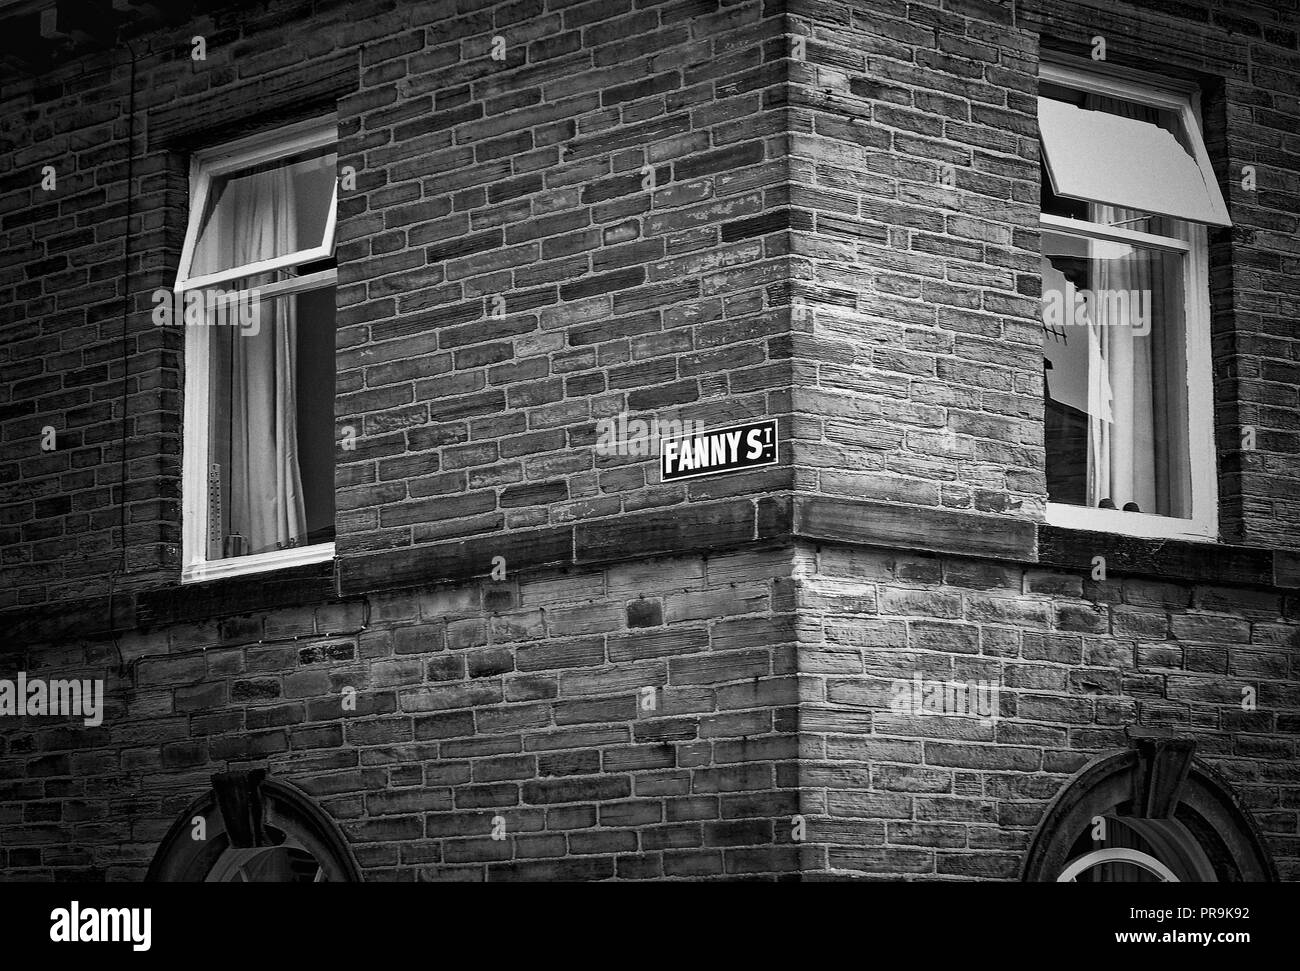 Perhaps not an unusual name in its day. An abstract view of Fanny Street, featuring the street sign. Saltaire, Shipley, Yorkshire - Stock Image